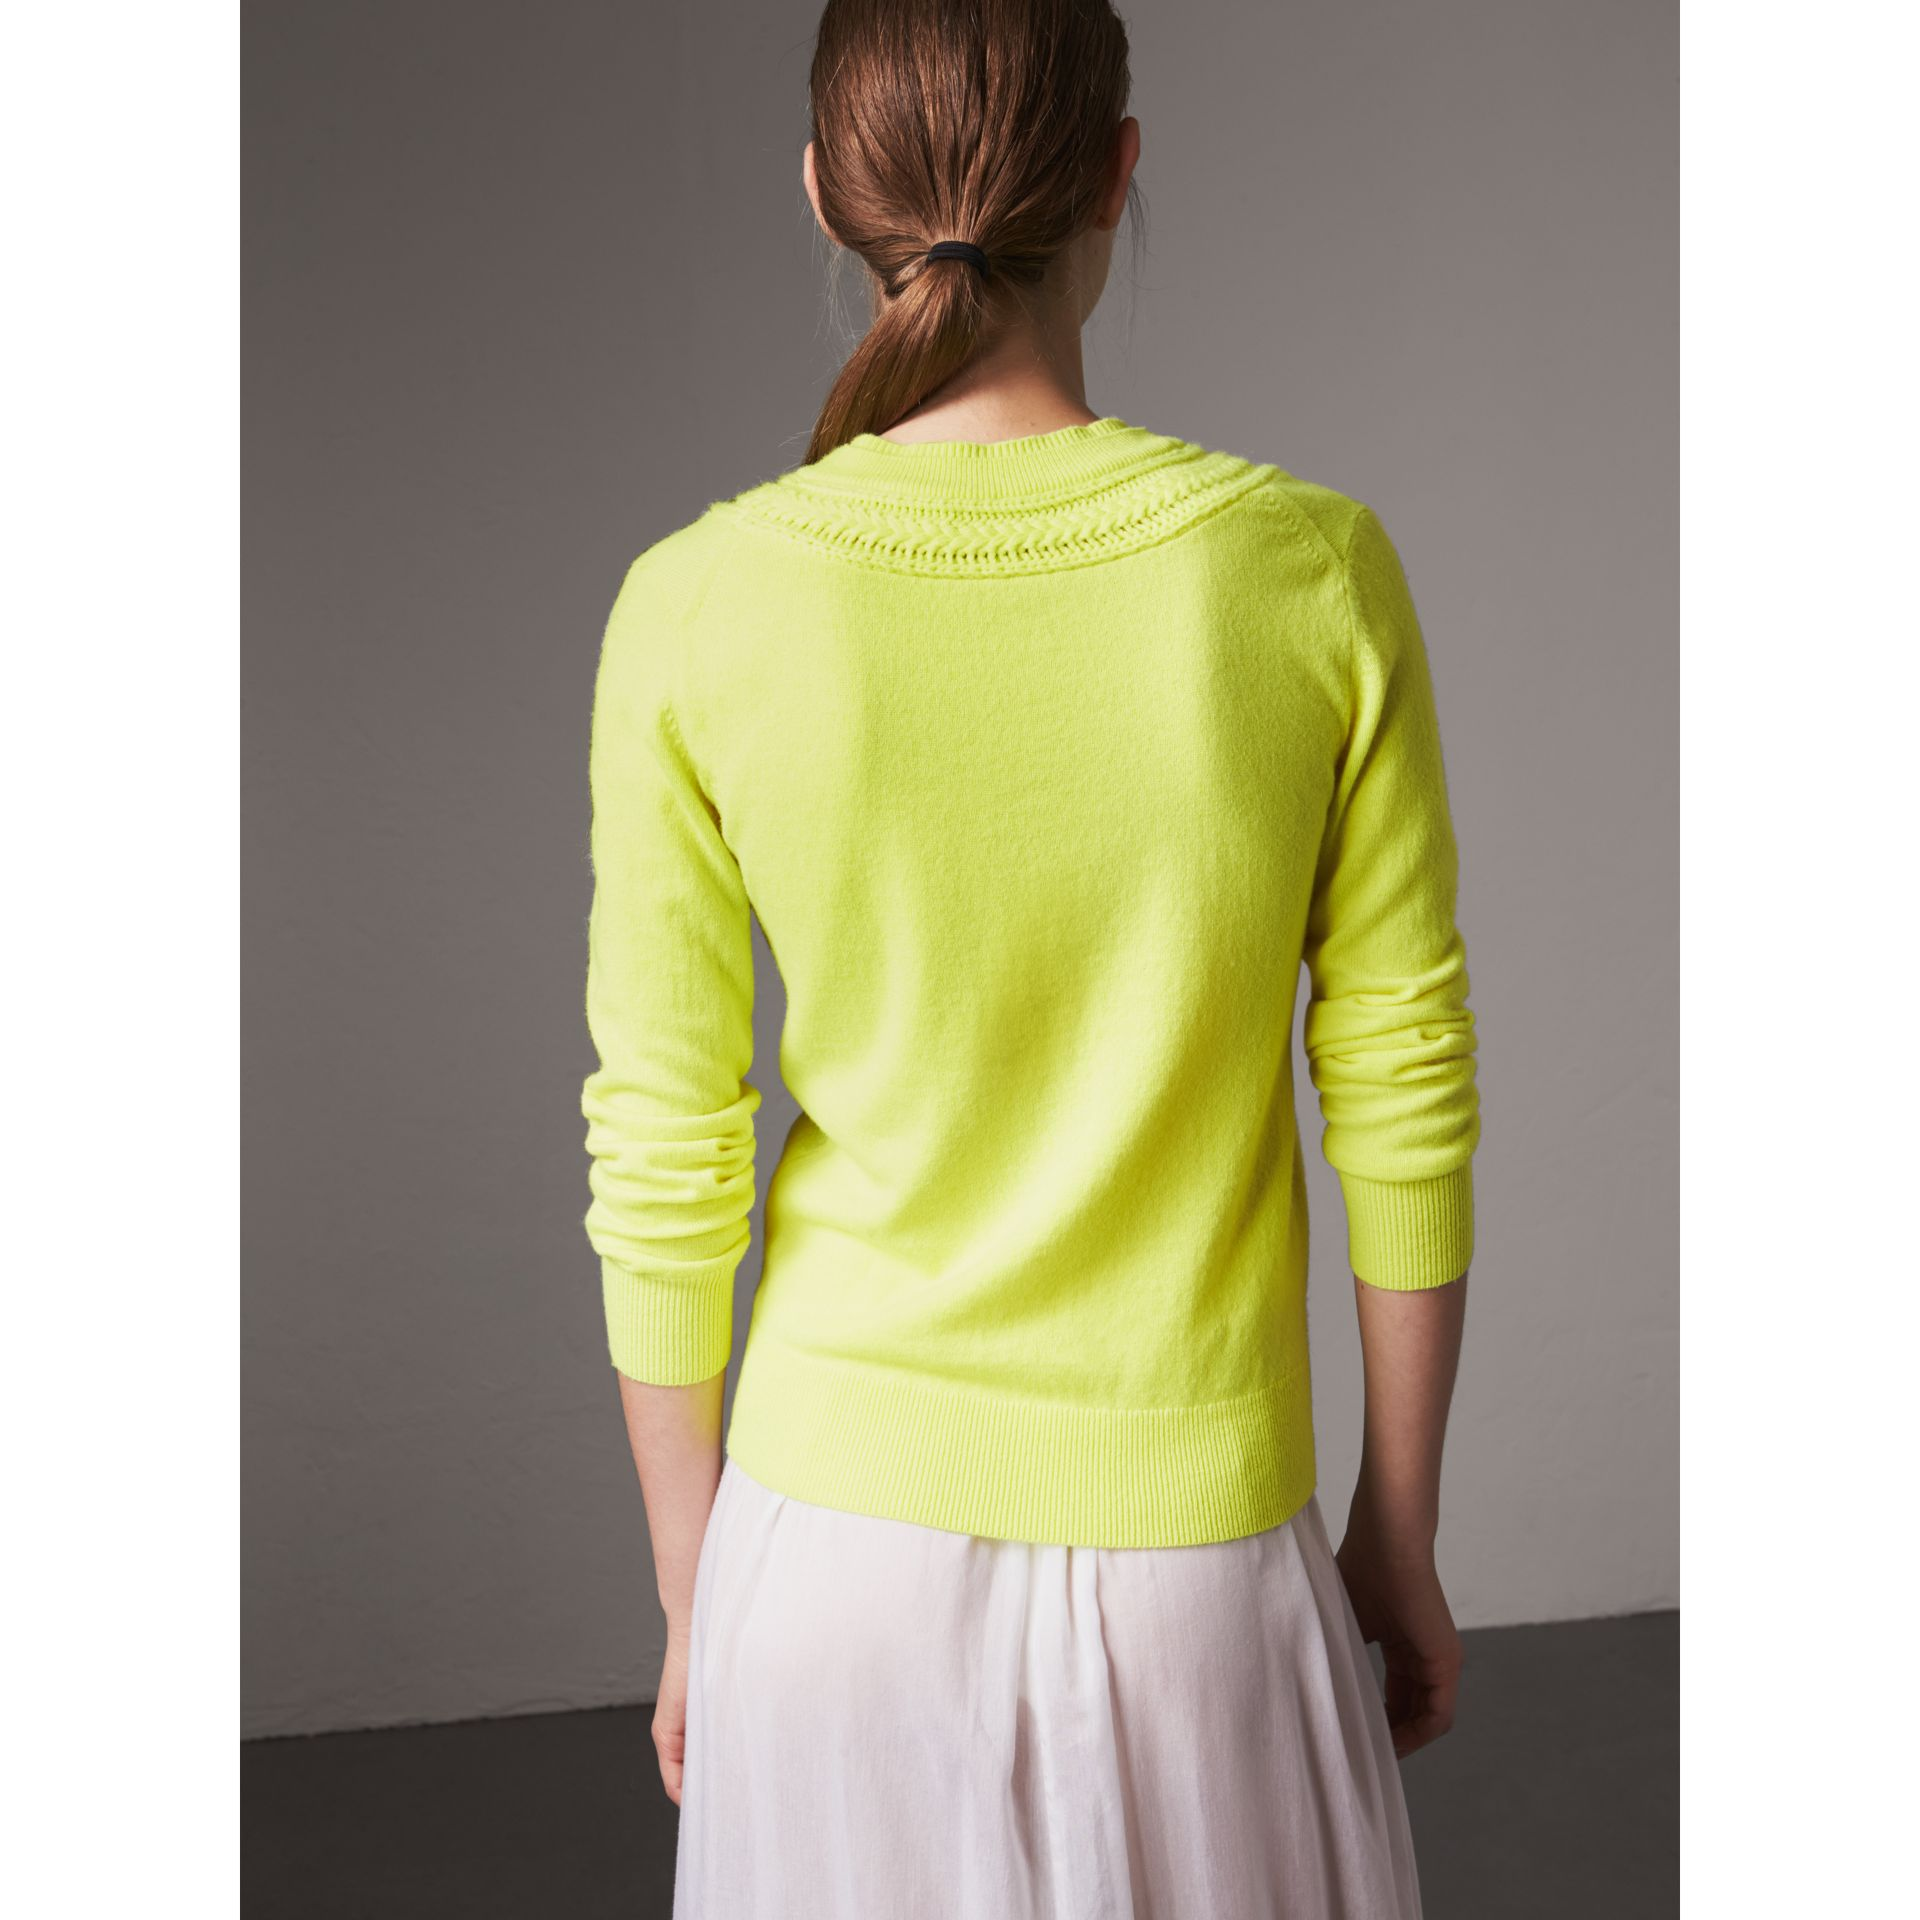 Cable Knit Yoke Cashmere Sweater in Fluorescent Yellow - Women | Burberry Canada - gallery image 2